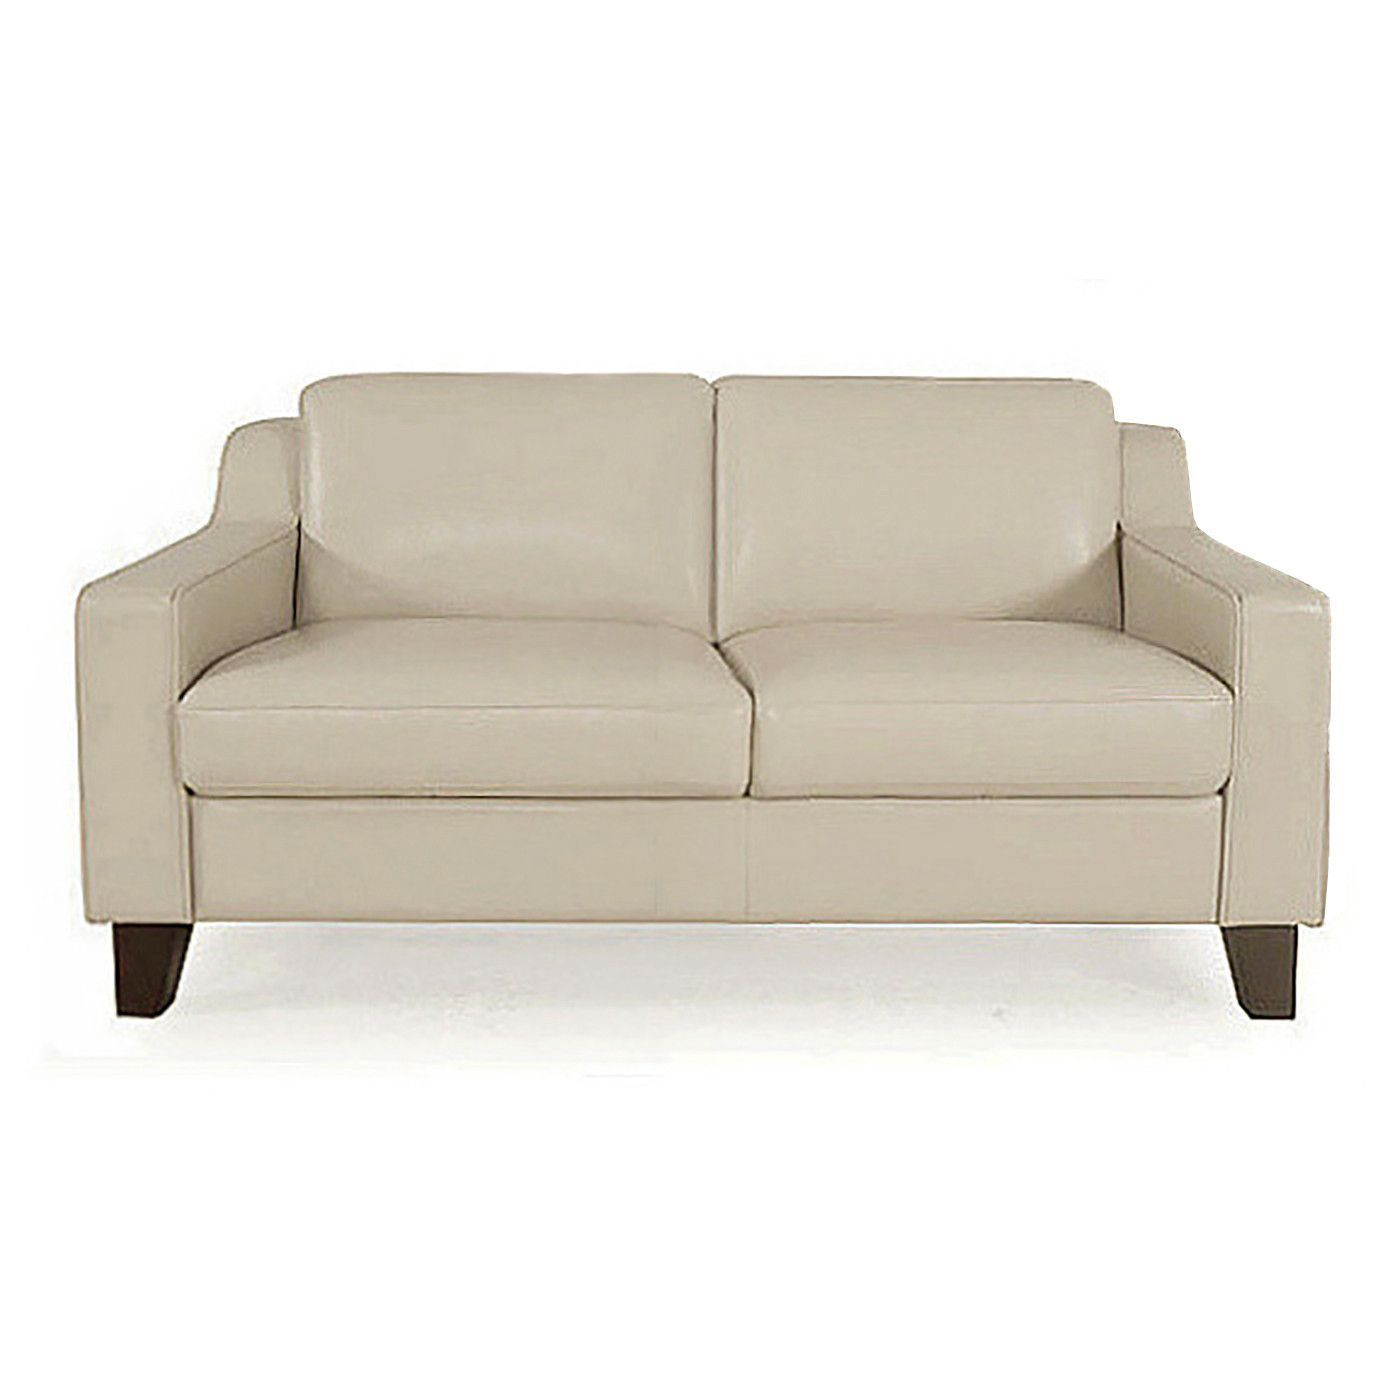 Barber Leather Apartment Size Sofa Tan Products Apartment Size